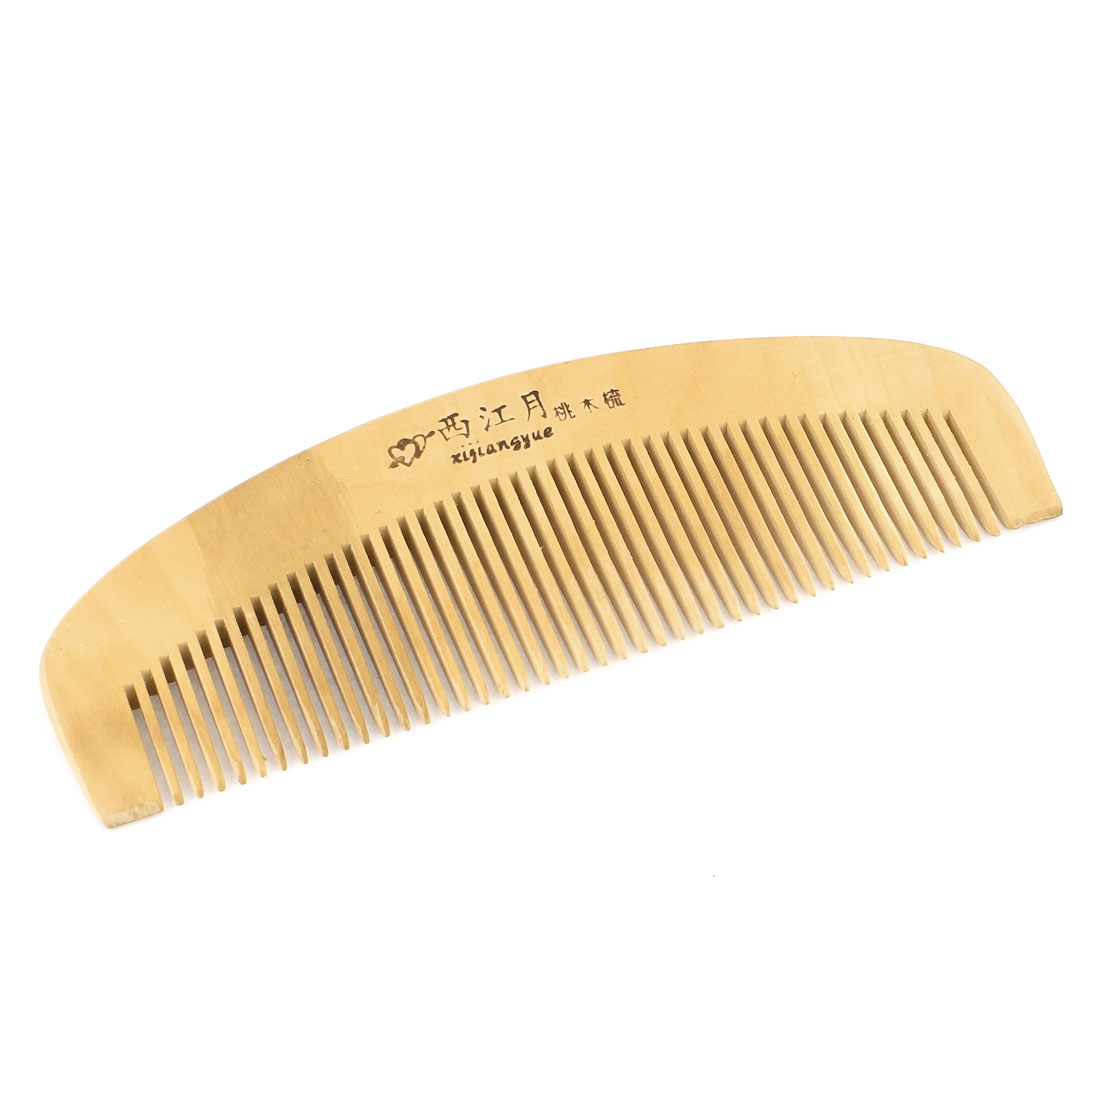 Wood Color Hairdressing Tool Massage Wide Toothed Wooden Hair Comb for Lady